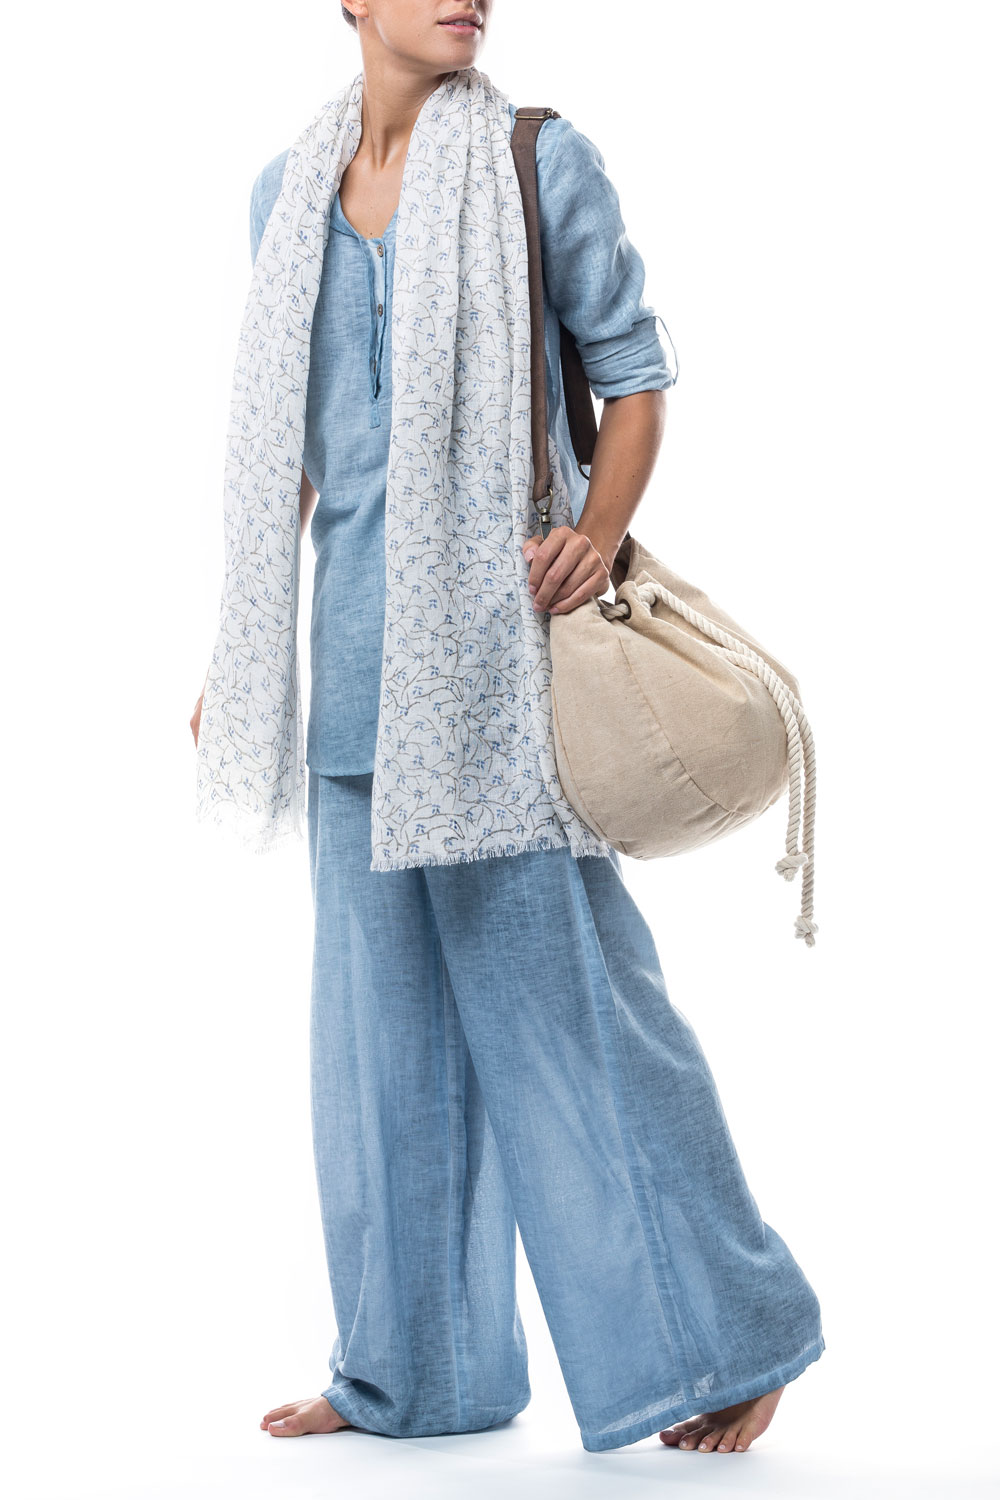 e19a22-outfit